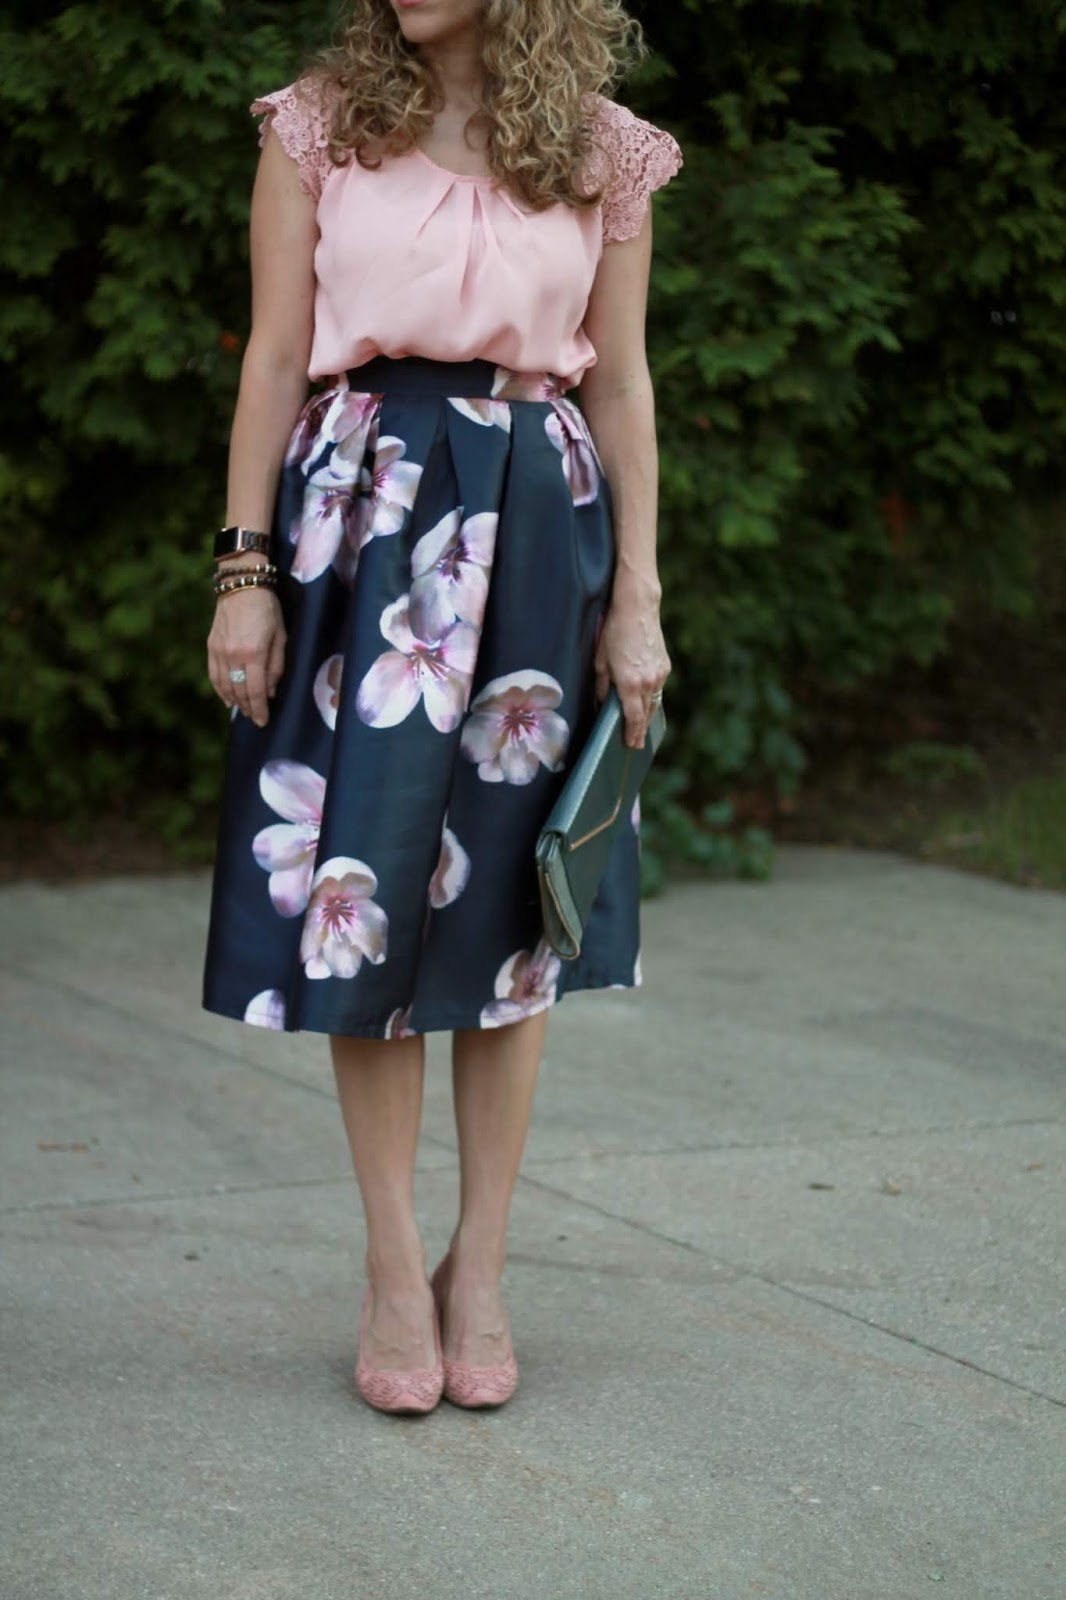 pink lace sleeve blouse, navy floral skirt, blush pumps, grey envelope clutch, dressy summer outfit